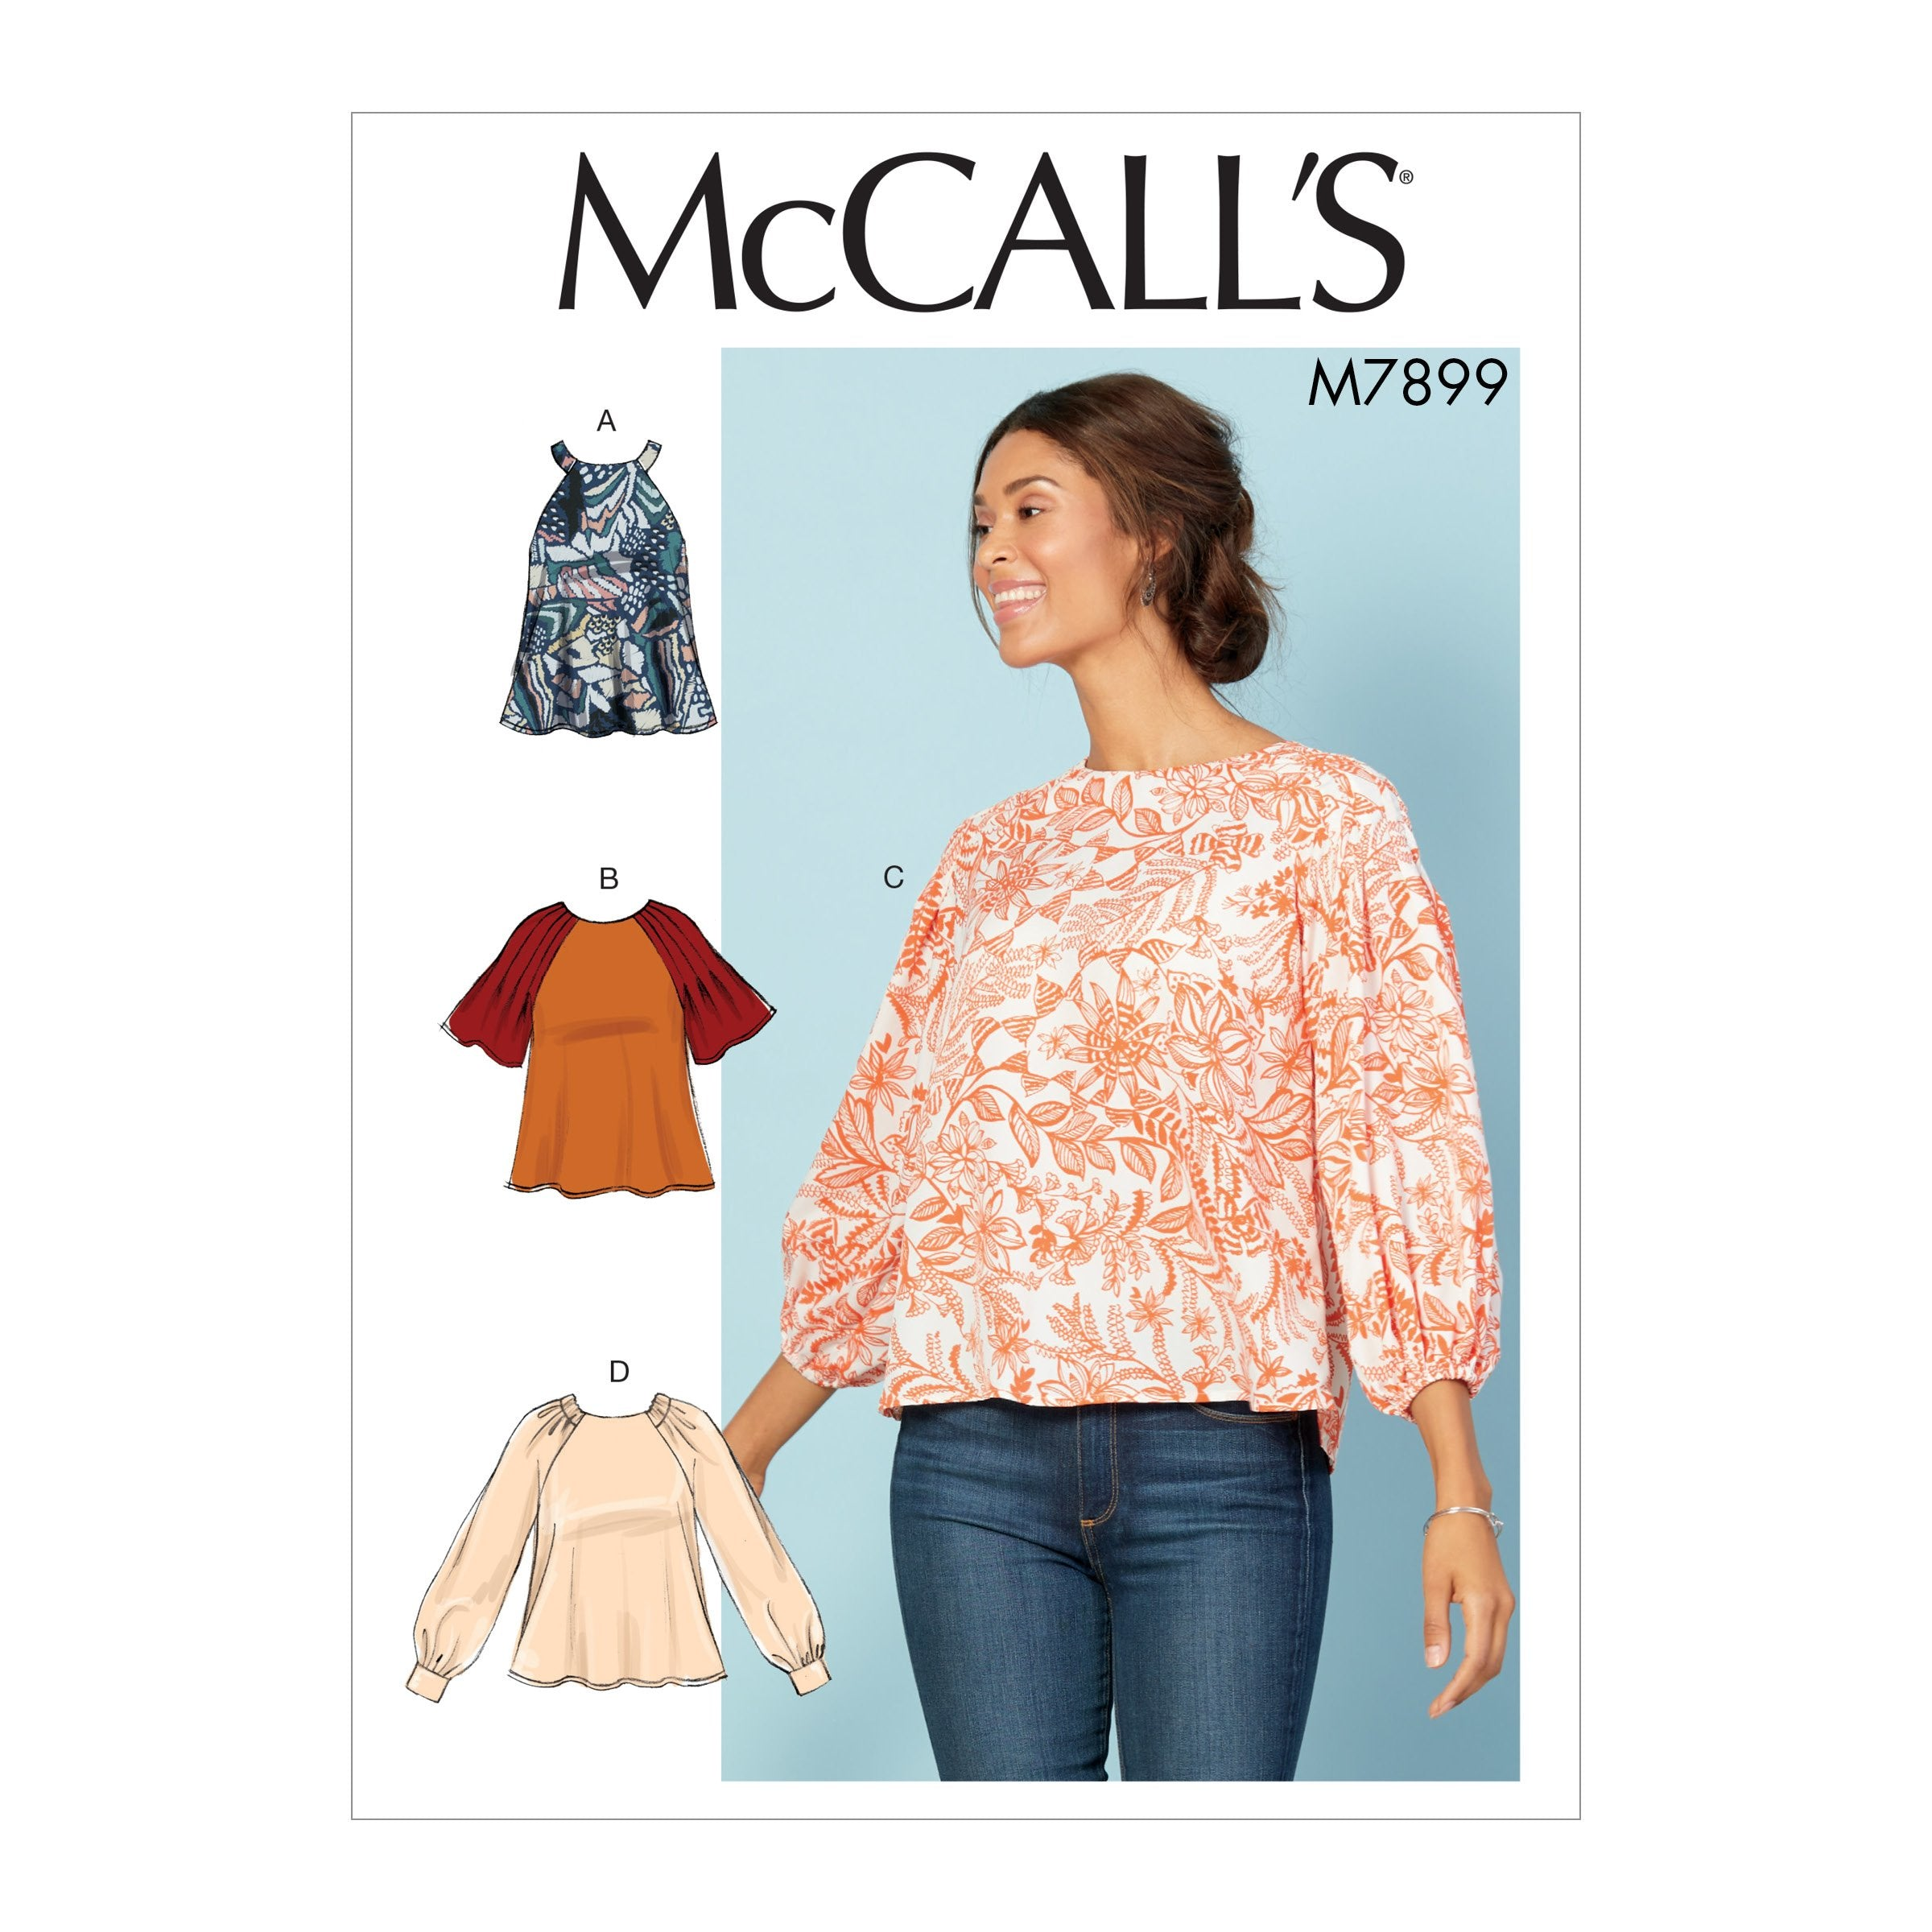 M7899 Misses' Tops Sewing Pattern